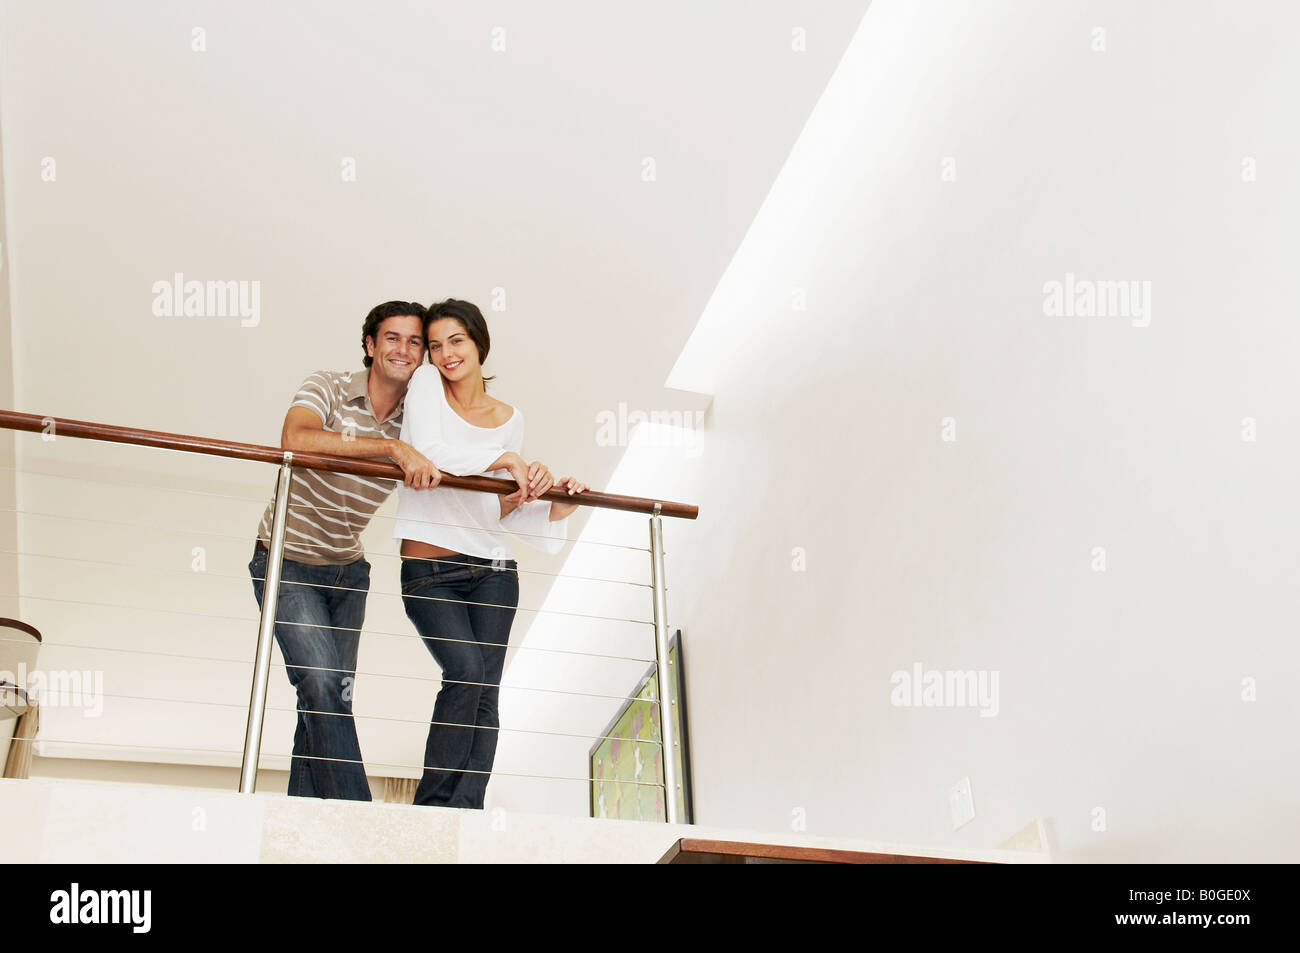 Contented couple lean over balcony - Stock Image